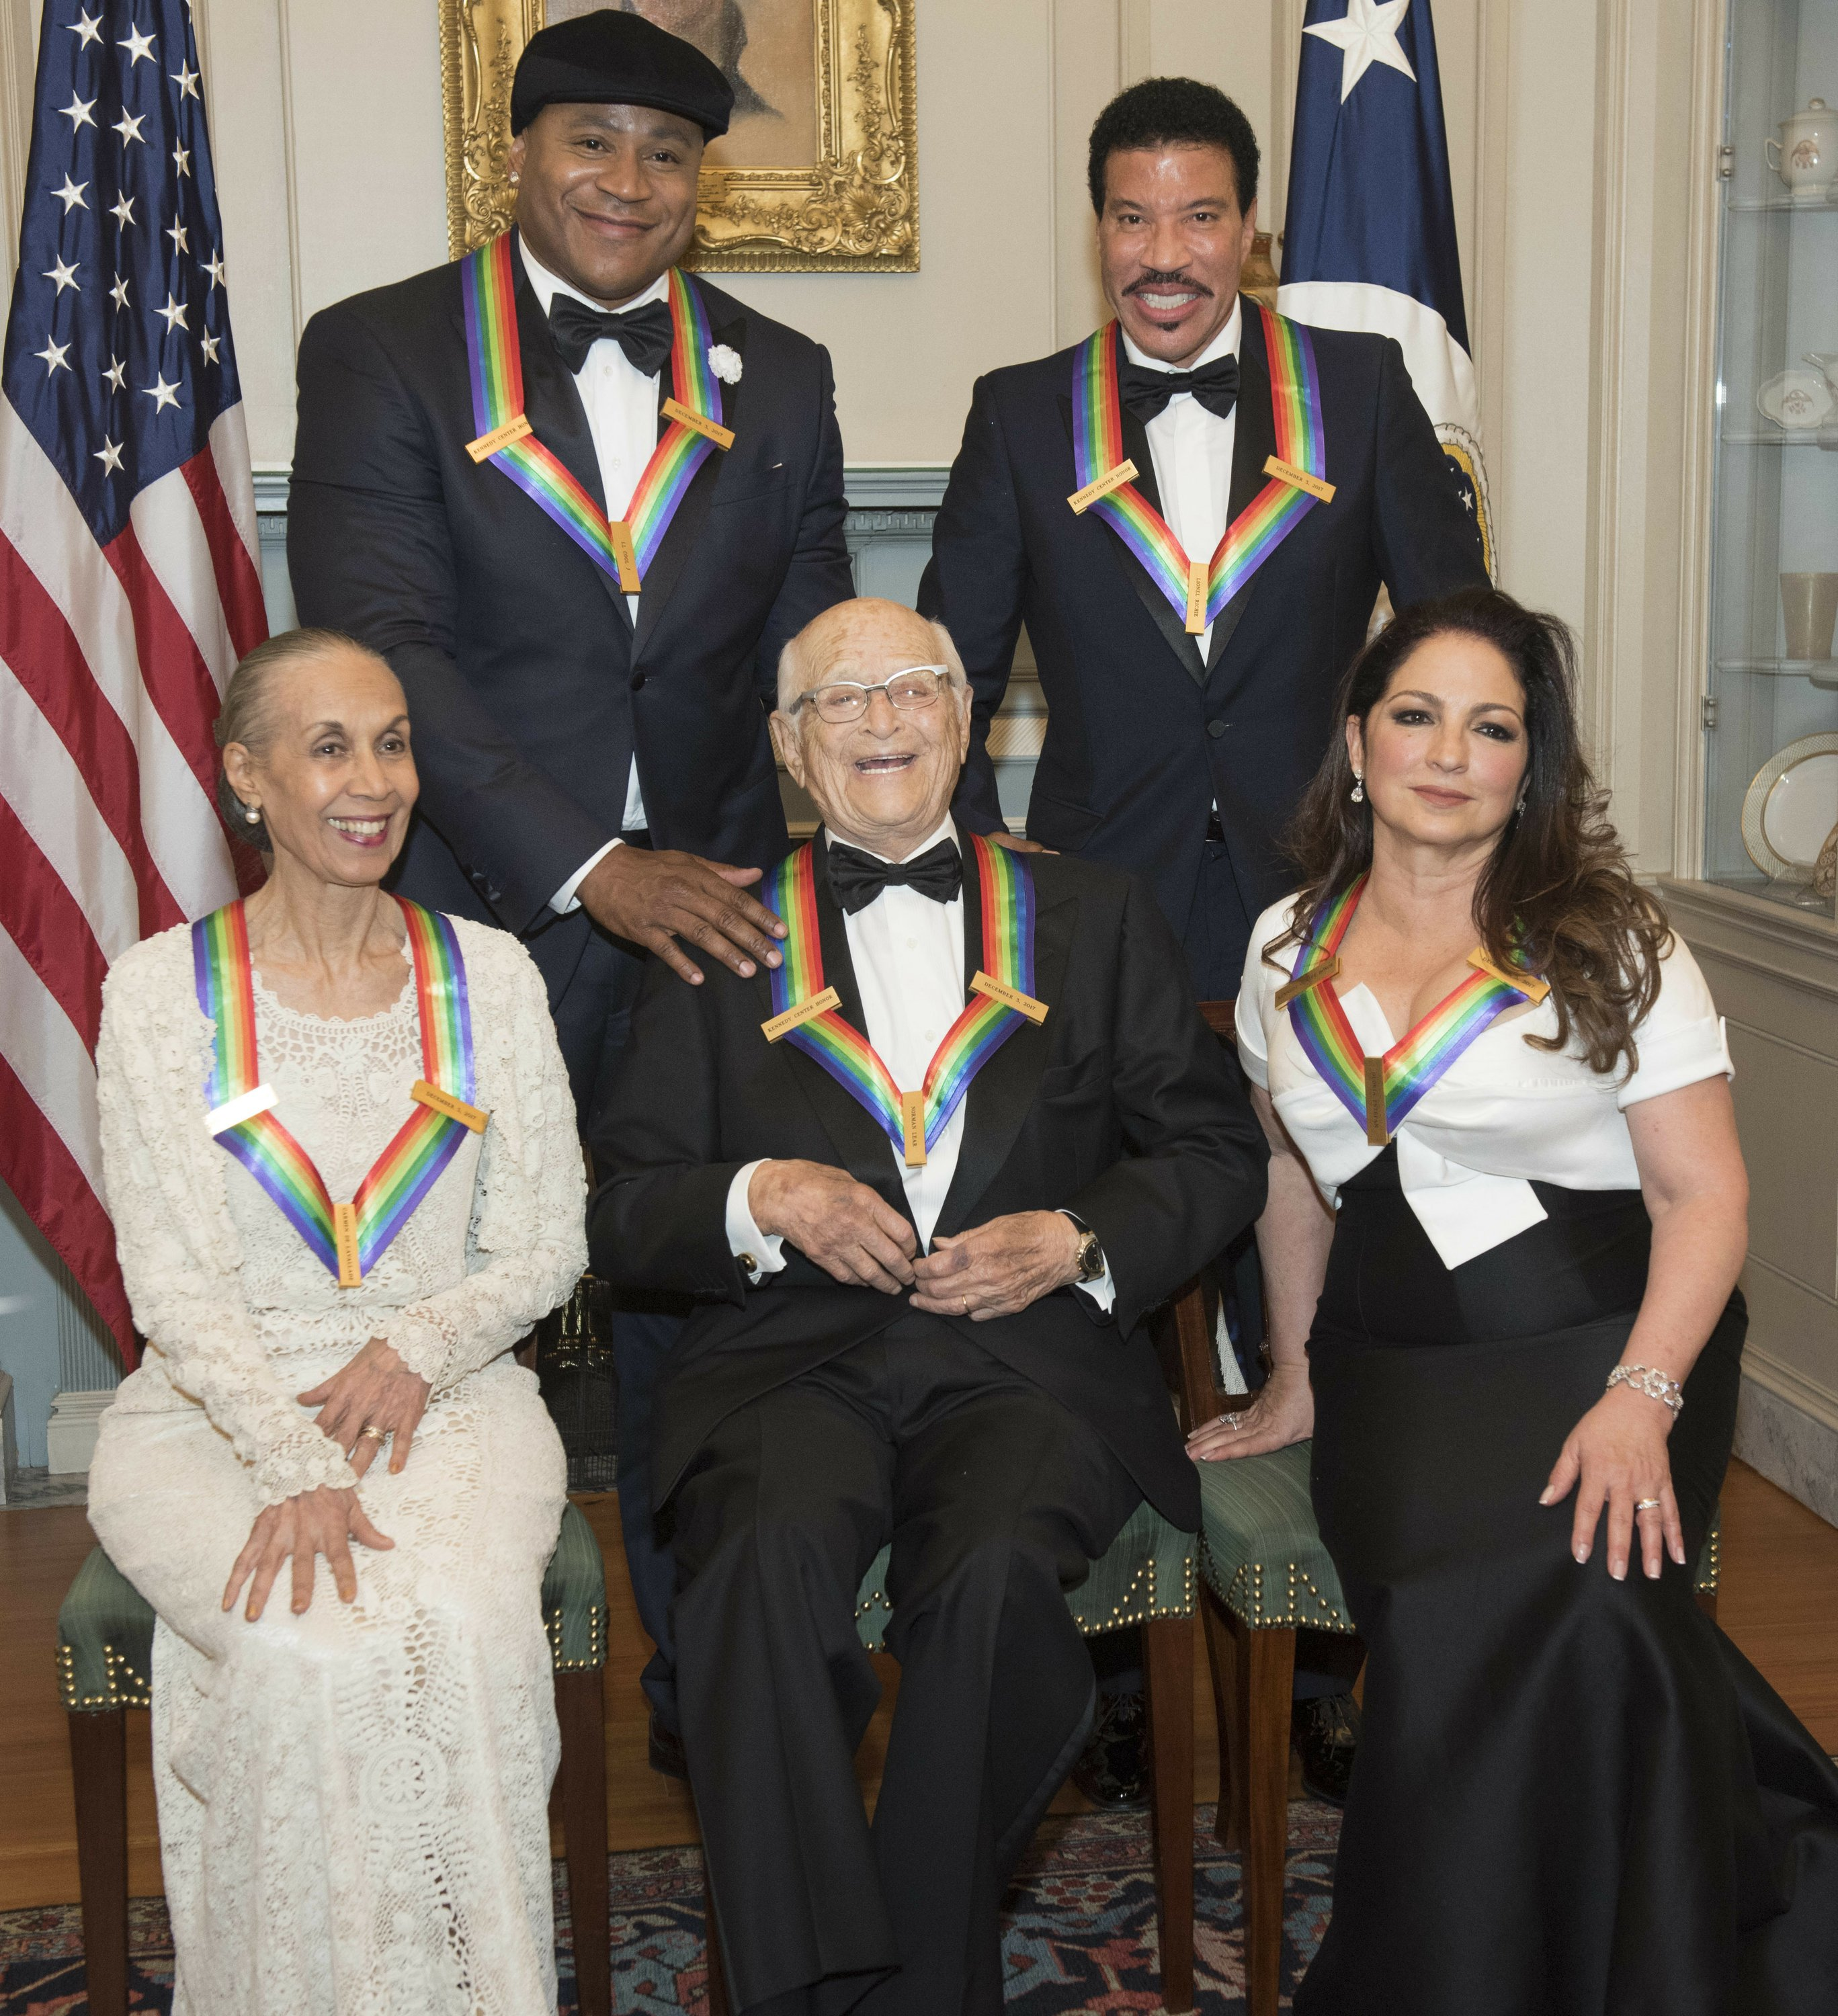 The Latest: Kennedy Center honorees get special tributes